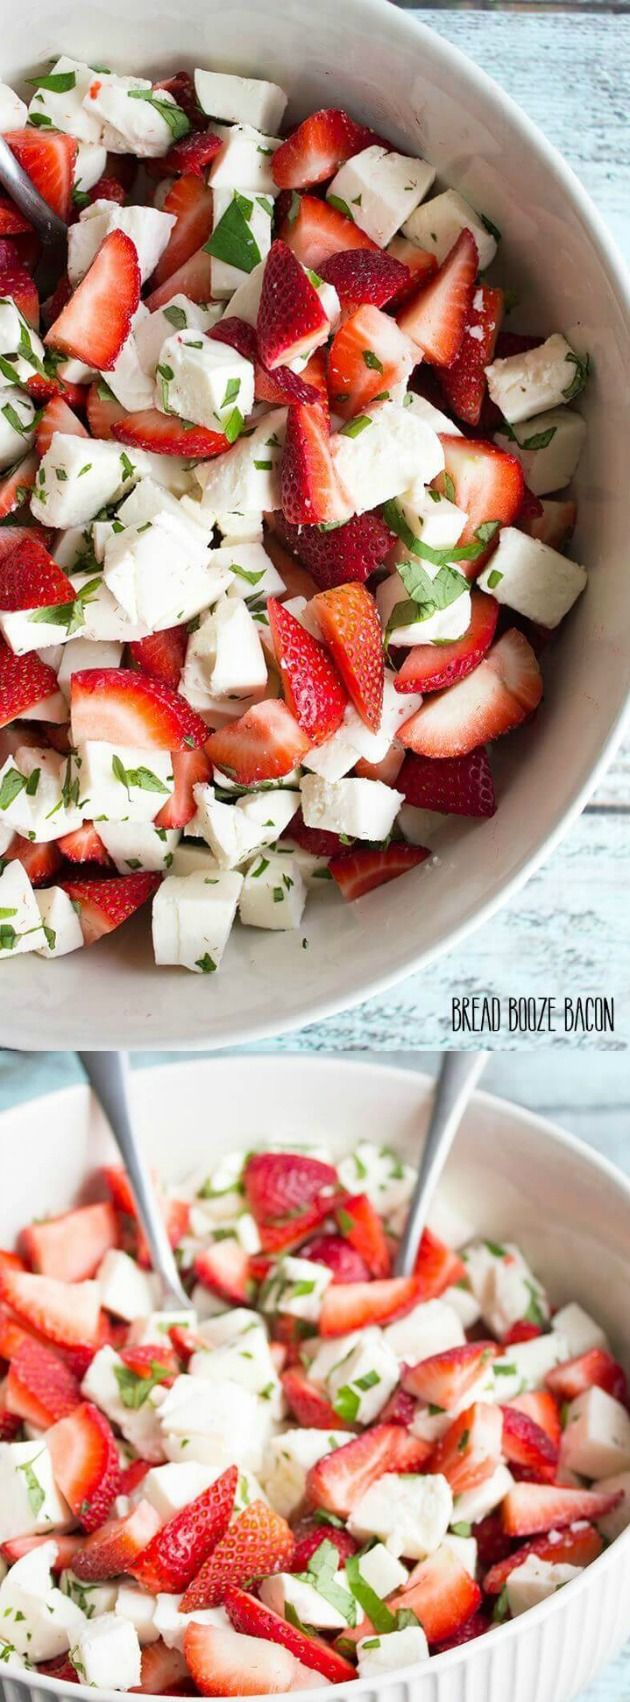 This Strawberry Caprese Salad recipe from Bread Booze Bacon will make you forget all about tomatoes! In fact, it has all the traditional caprese colors with a bright fruit twist that is perfect for summer.